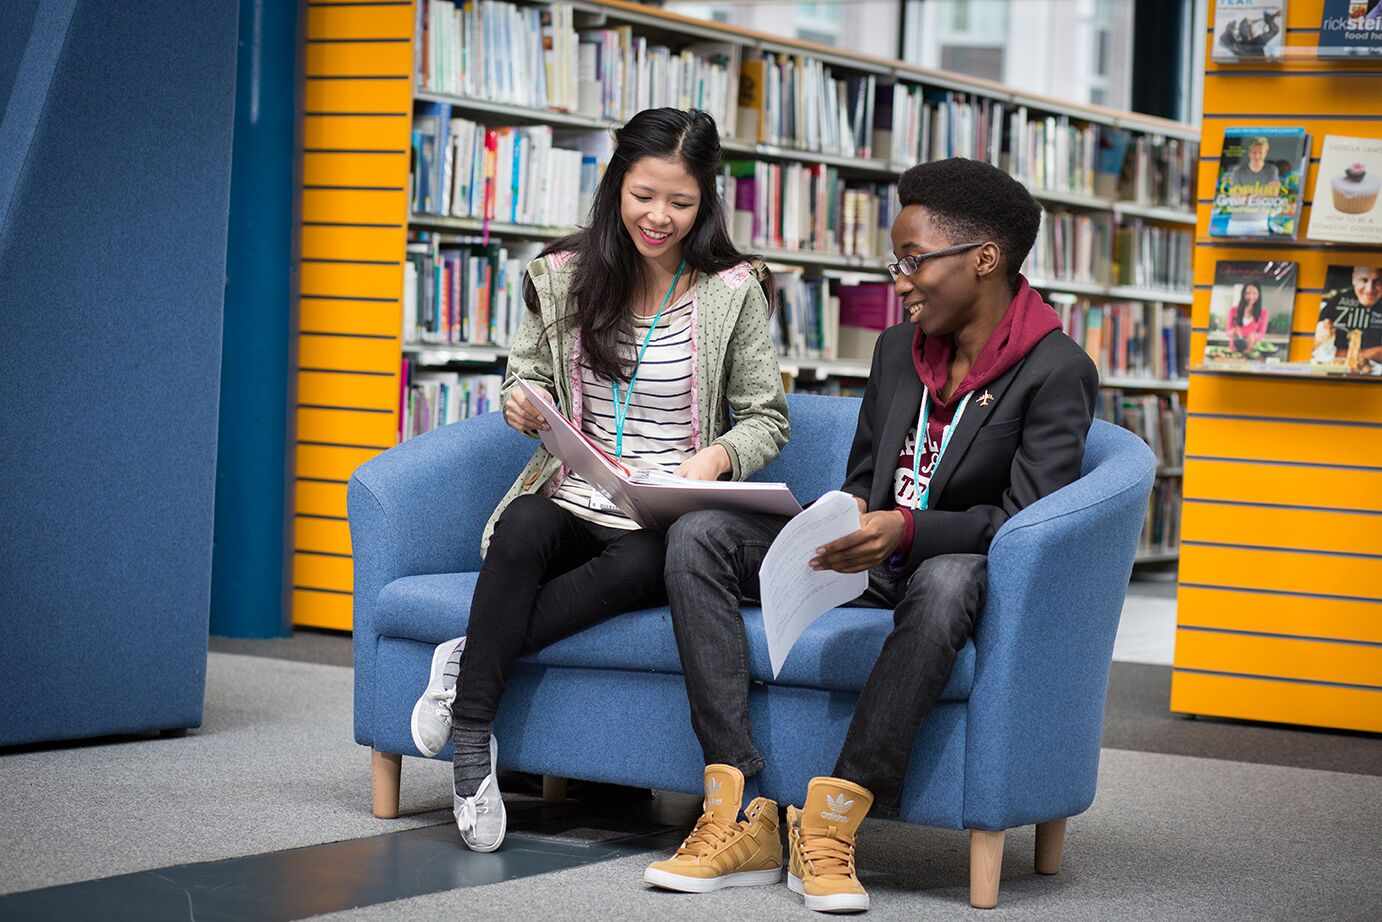 Did you know we have 541,720,573 resources at Leeds City College?